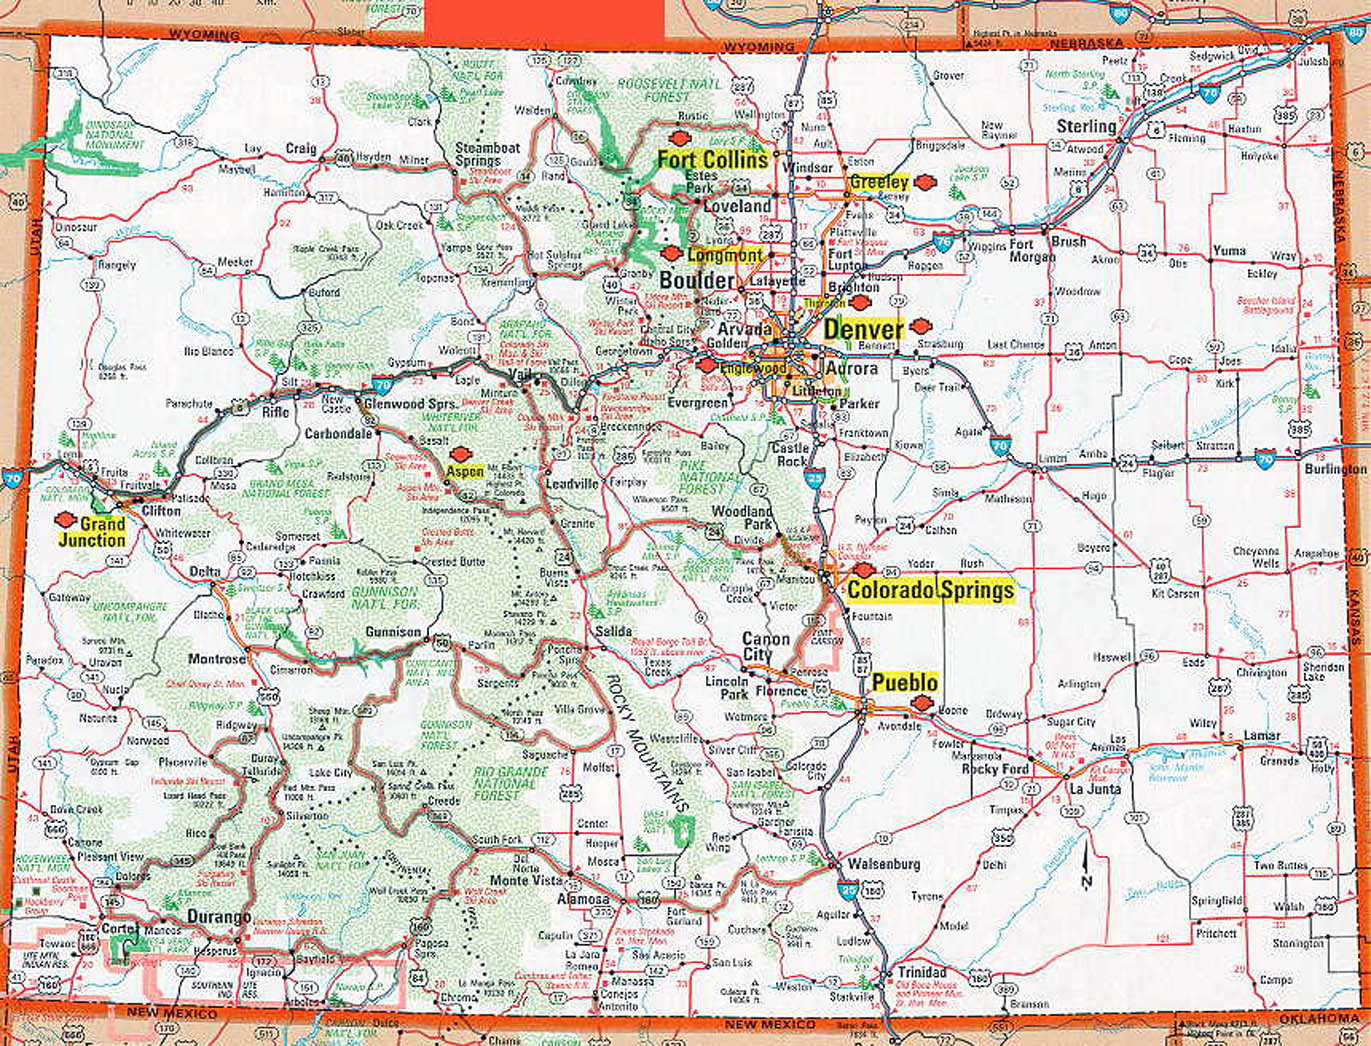 Road And Highways Map Of Colorado State Colorado State Road And - Colorado state map